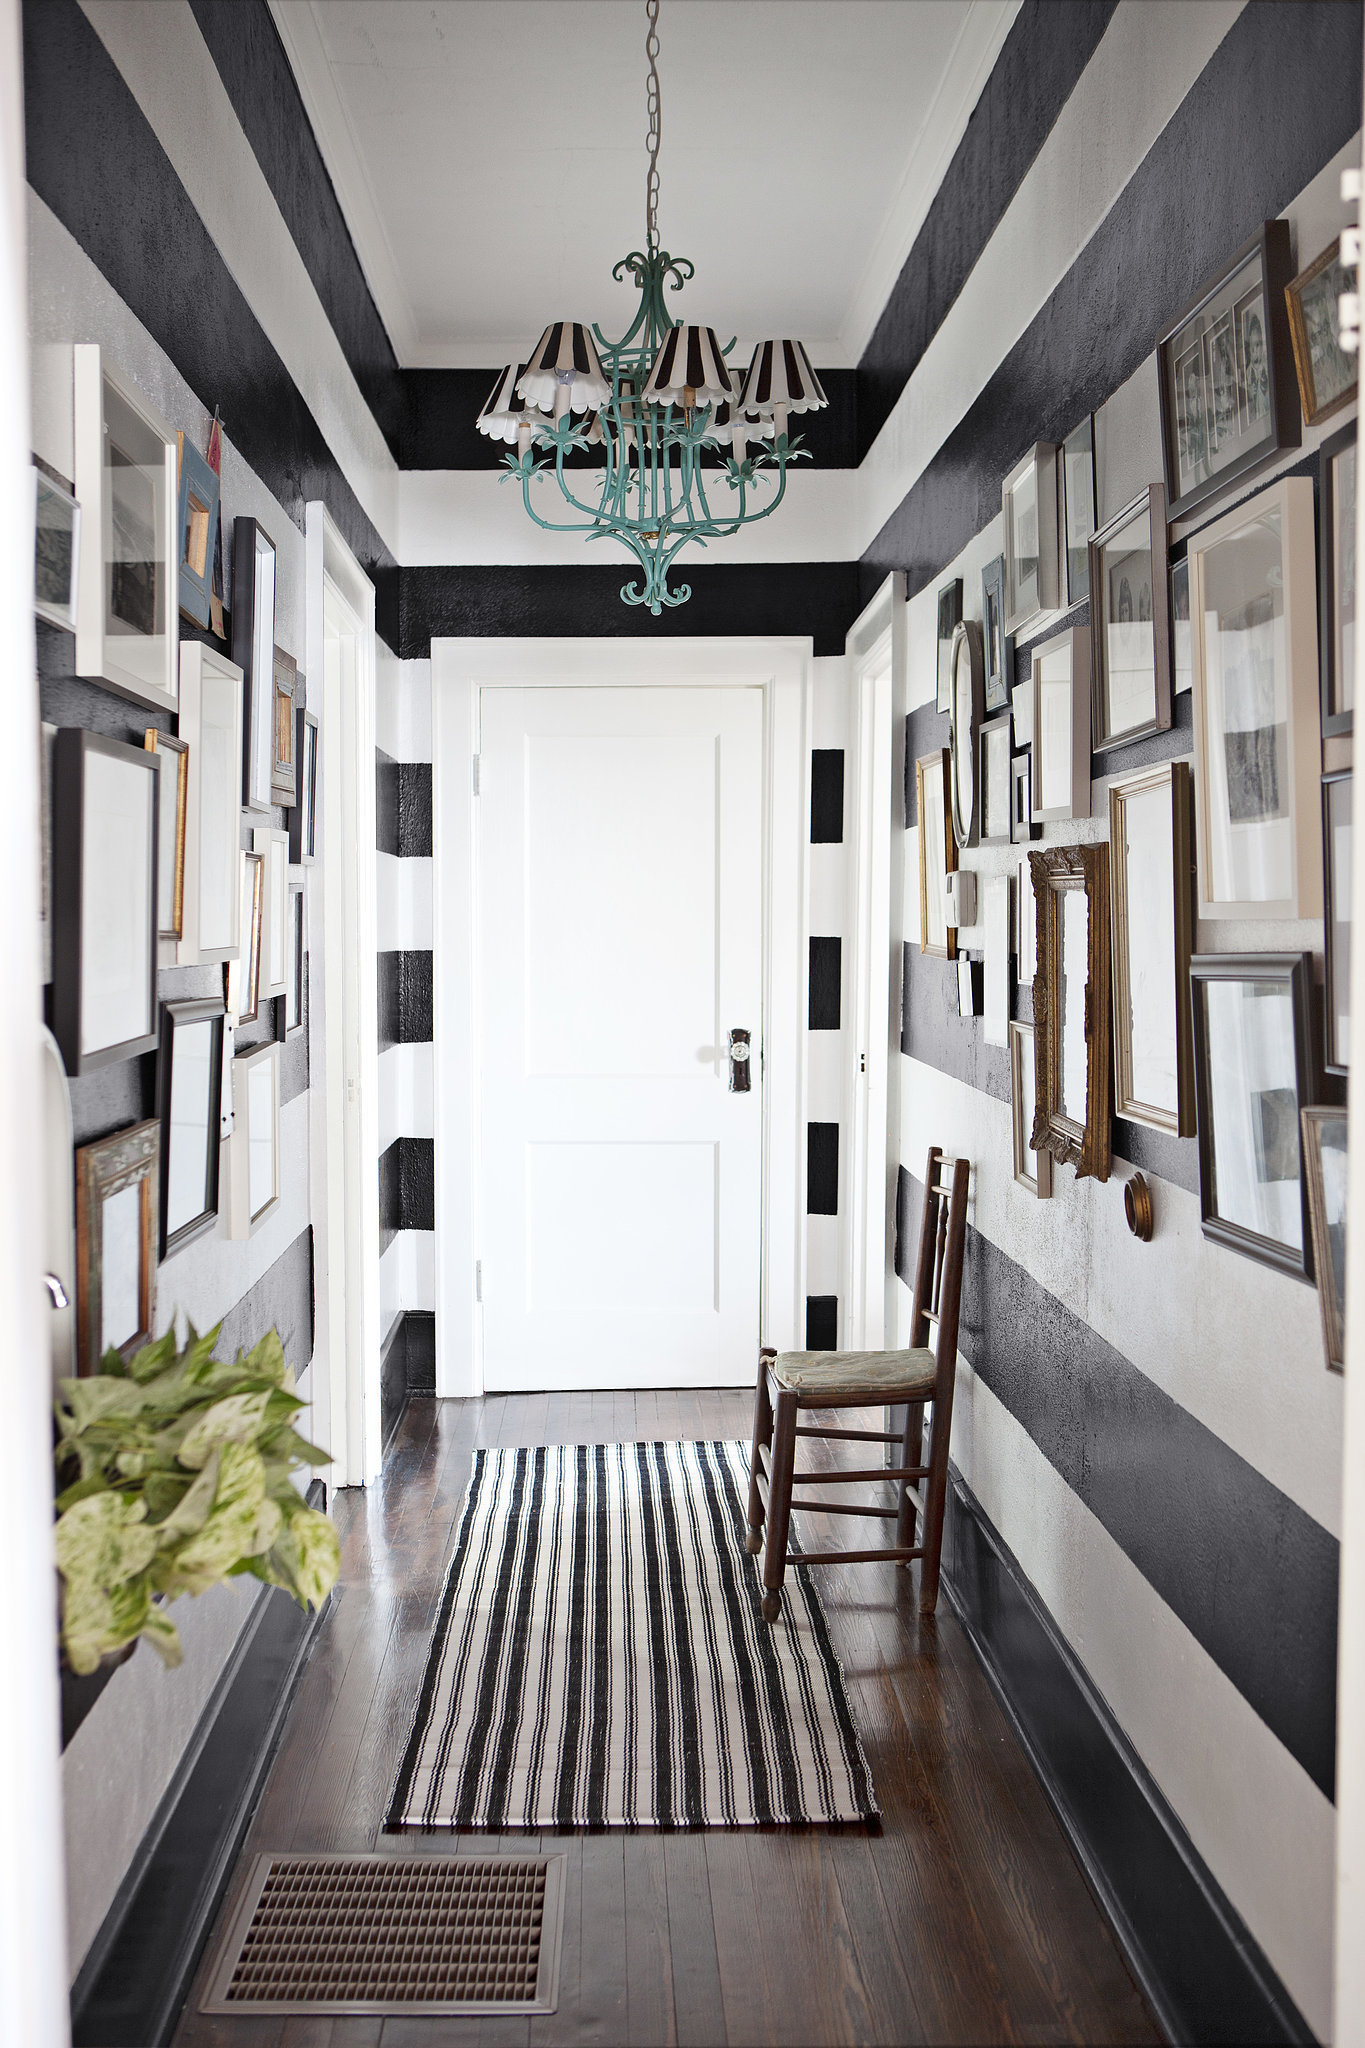 How to decorate a narrow hallway popsugar home for Pictures for hallway walls